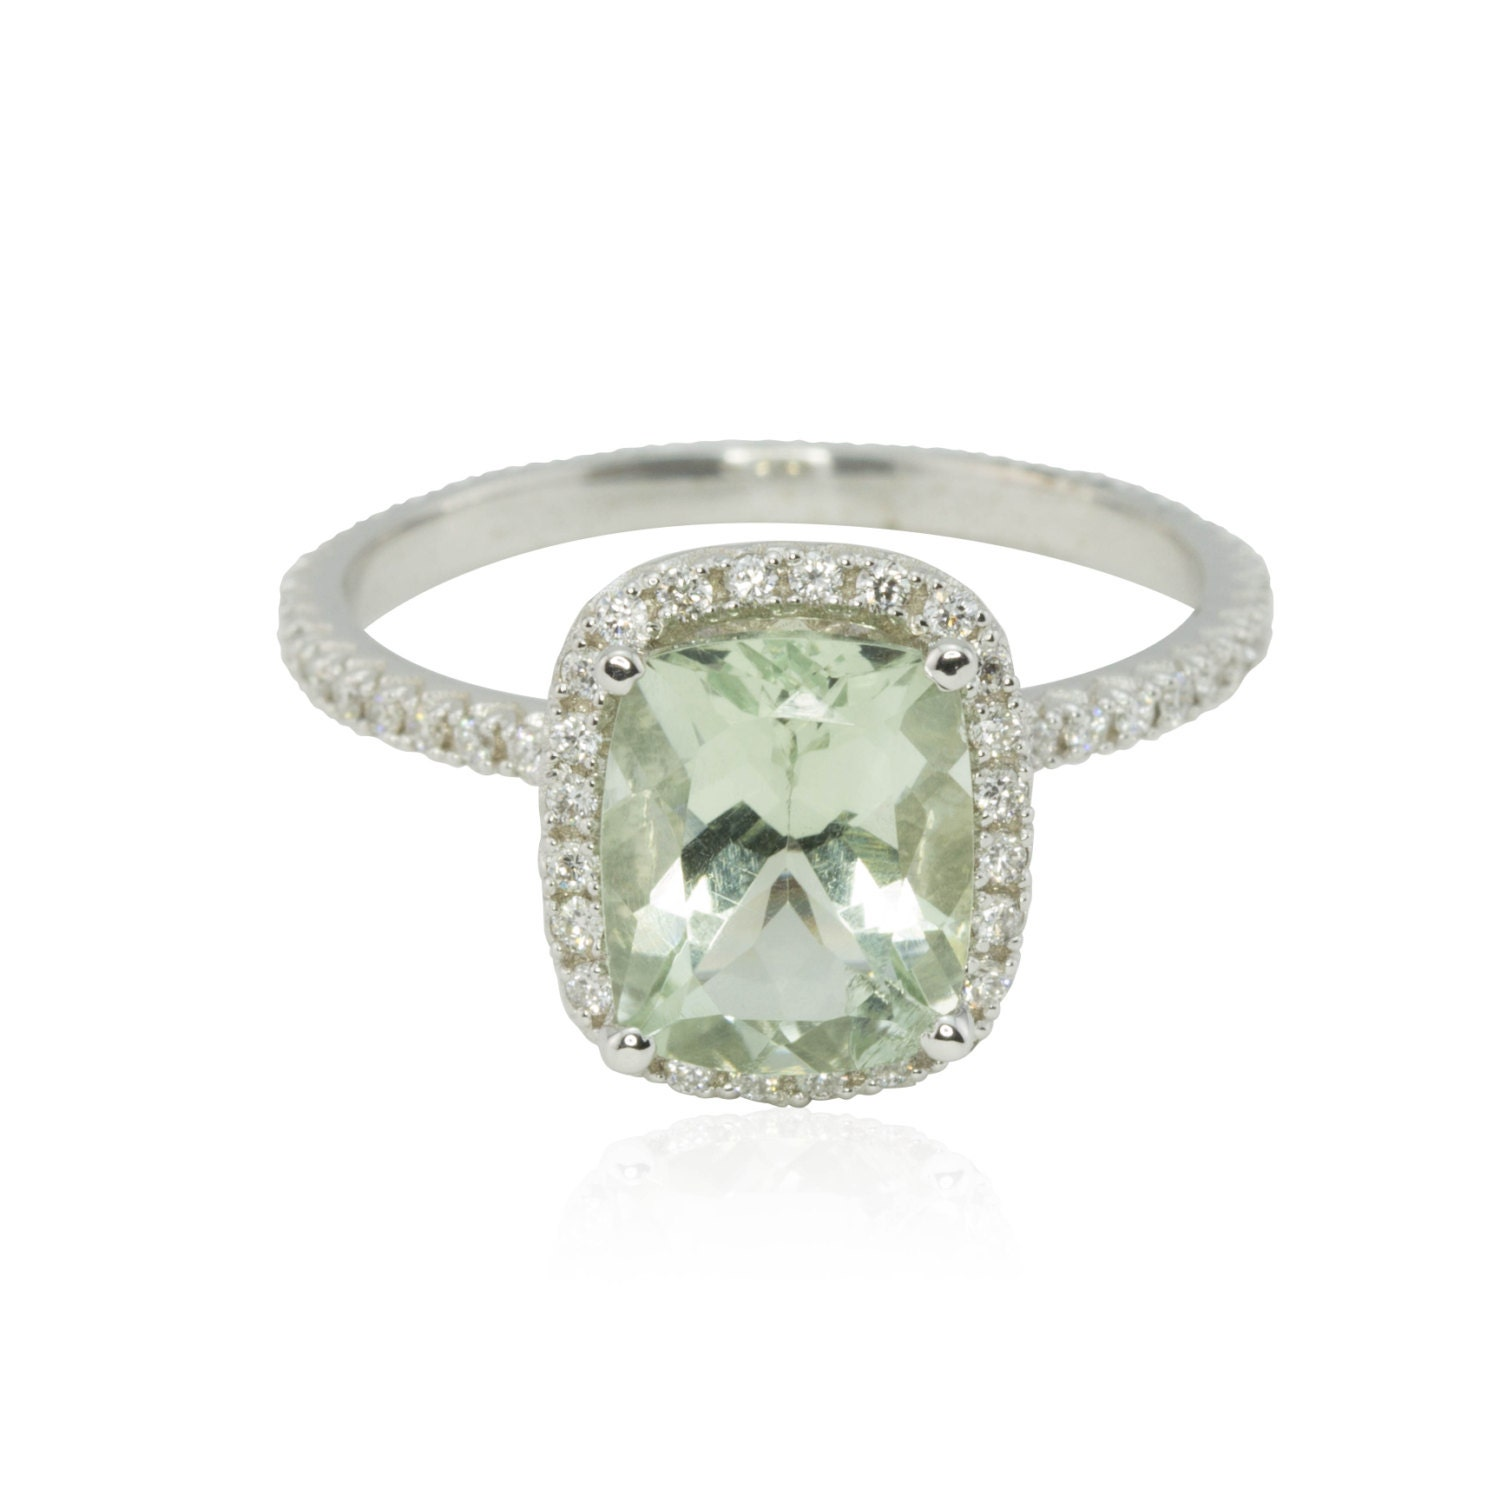 Engagement Ring Cushion Cut Prasiolite Ring by LaurieSarahDesigns